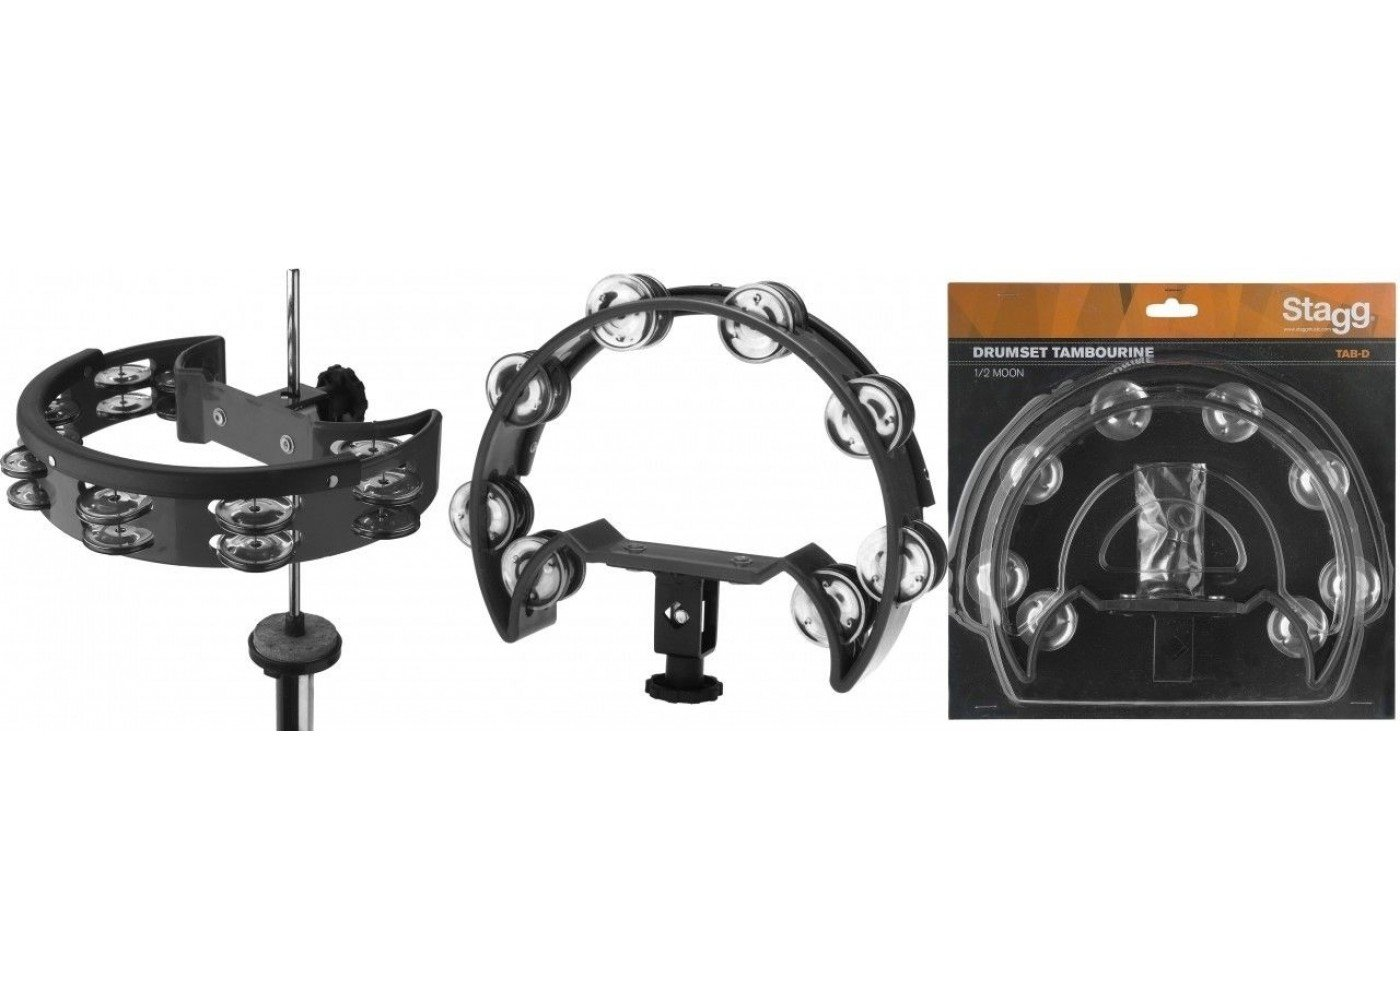 Stagg TAB-DBK 1/2 Moon Drumset Tambourine